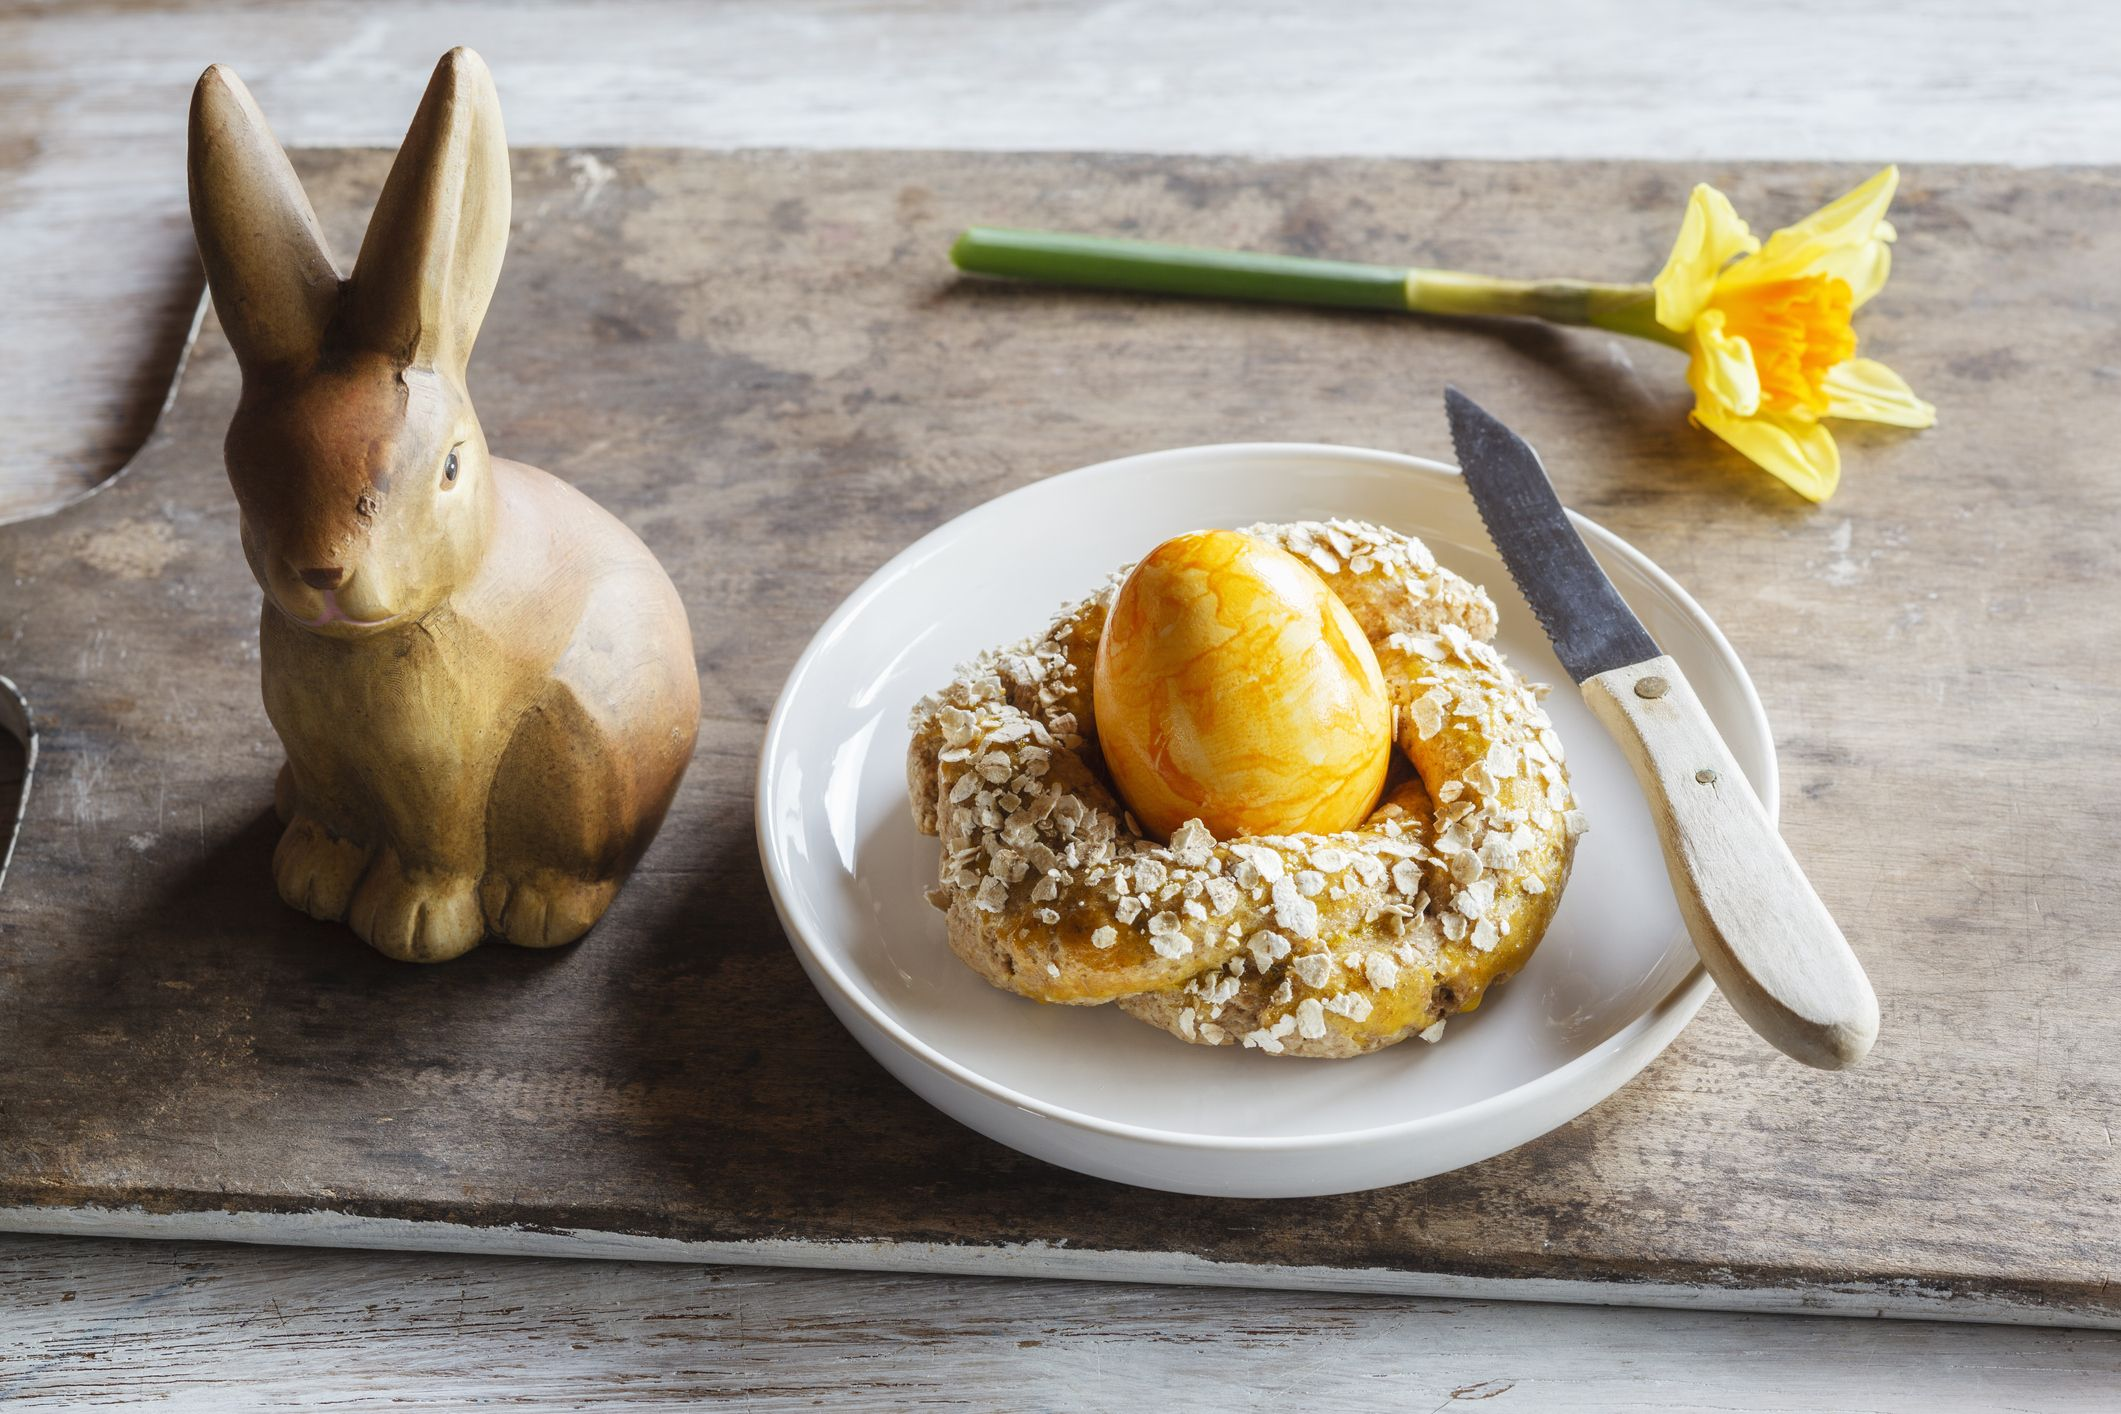 Pinterest inspiration: Turn brunch into an Easter bunny